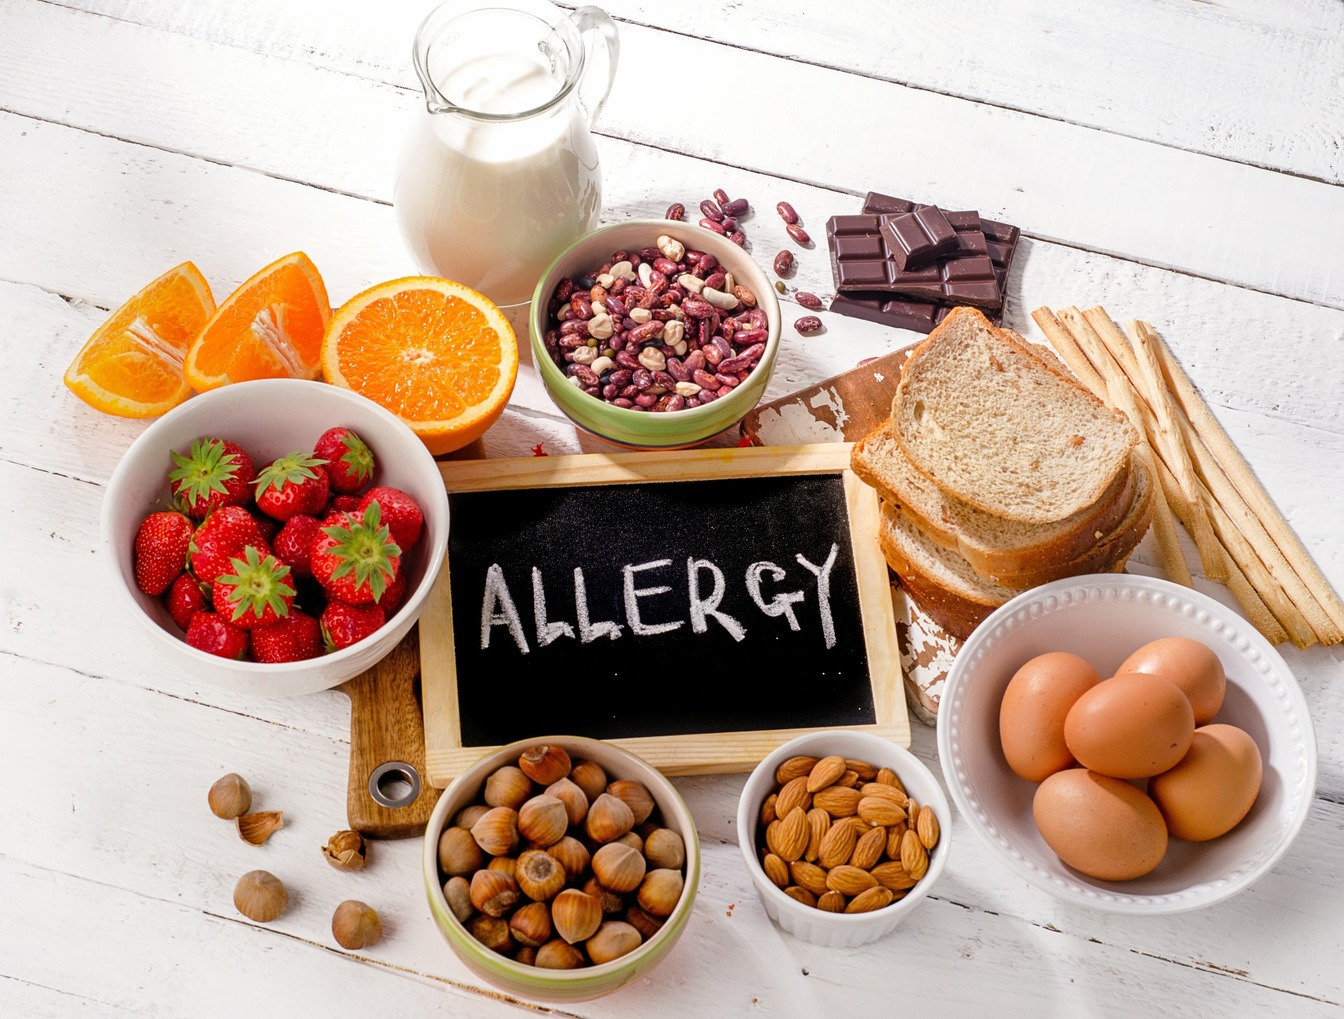 'Allergy' written on a chalk board, surrounded by allergens, including strawberries, bread, eggs, fruit, nuts and milk.